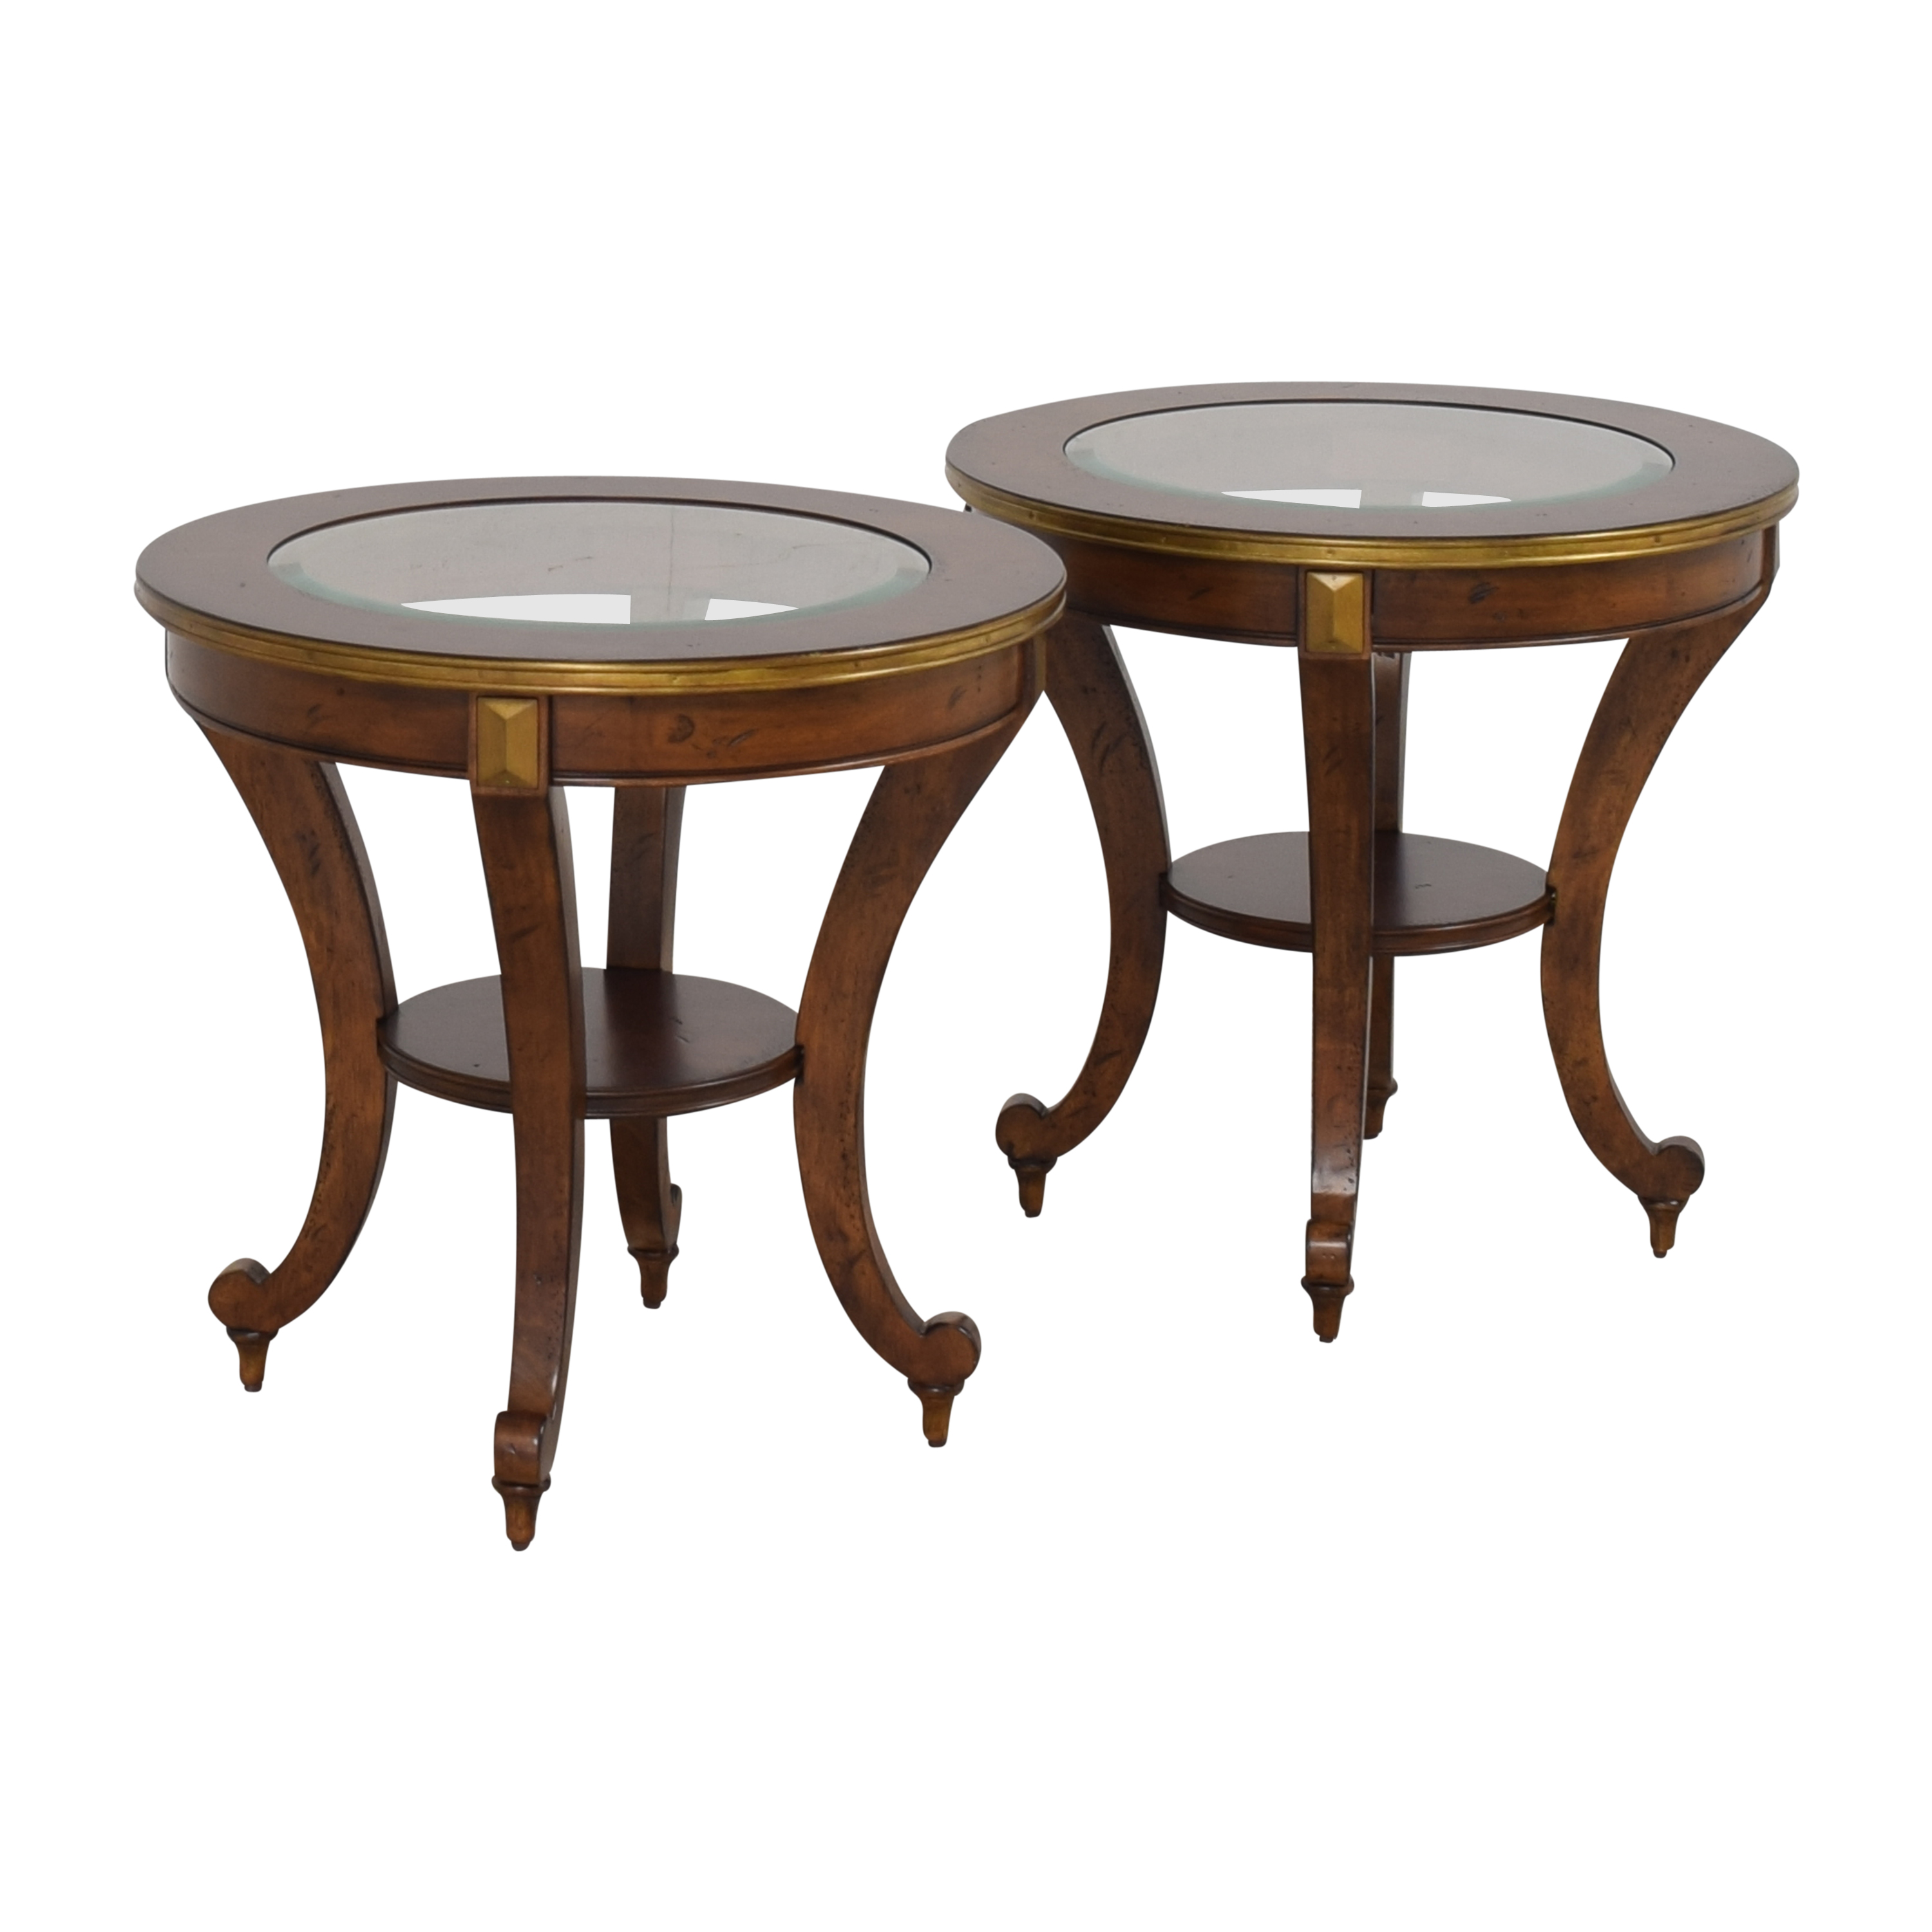 Havertys Havertys Round End Tables pa